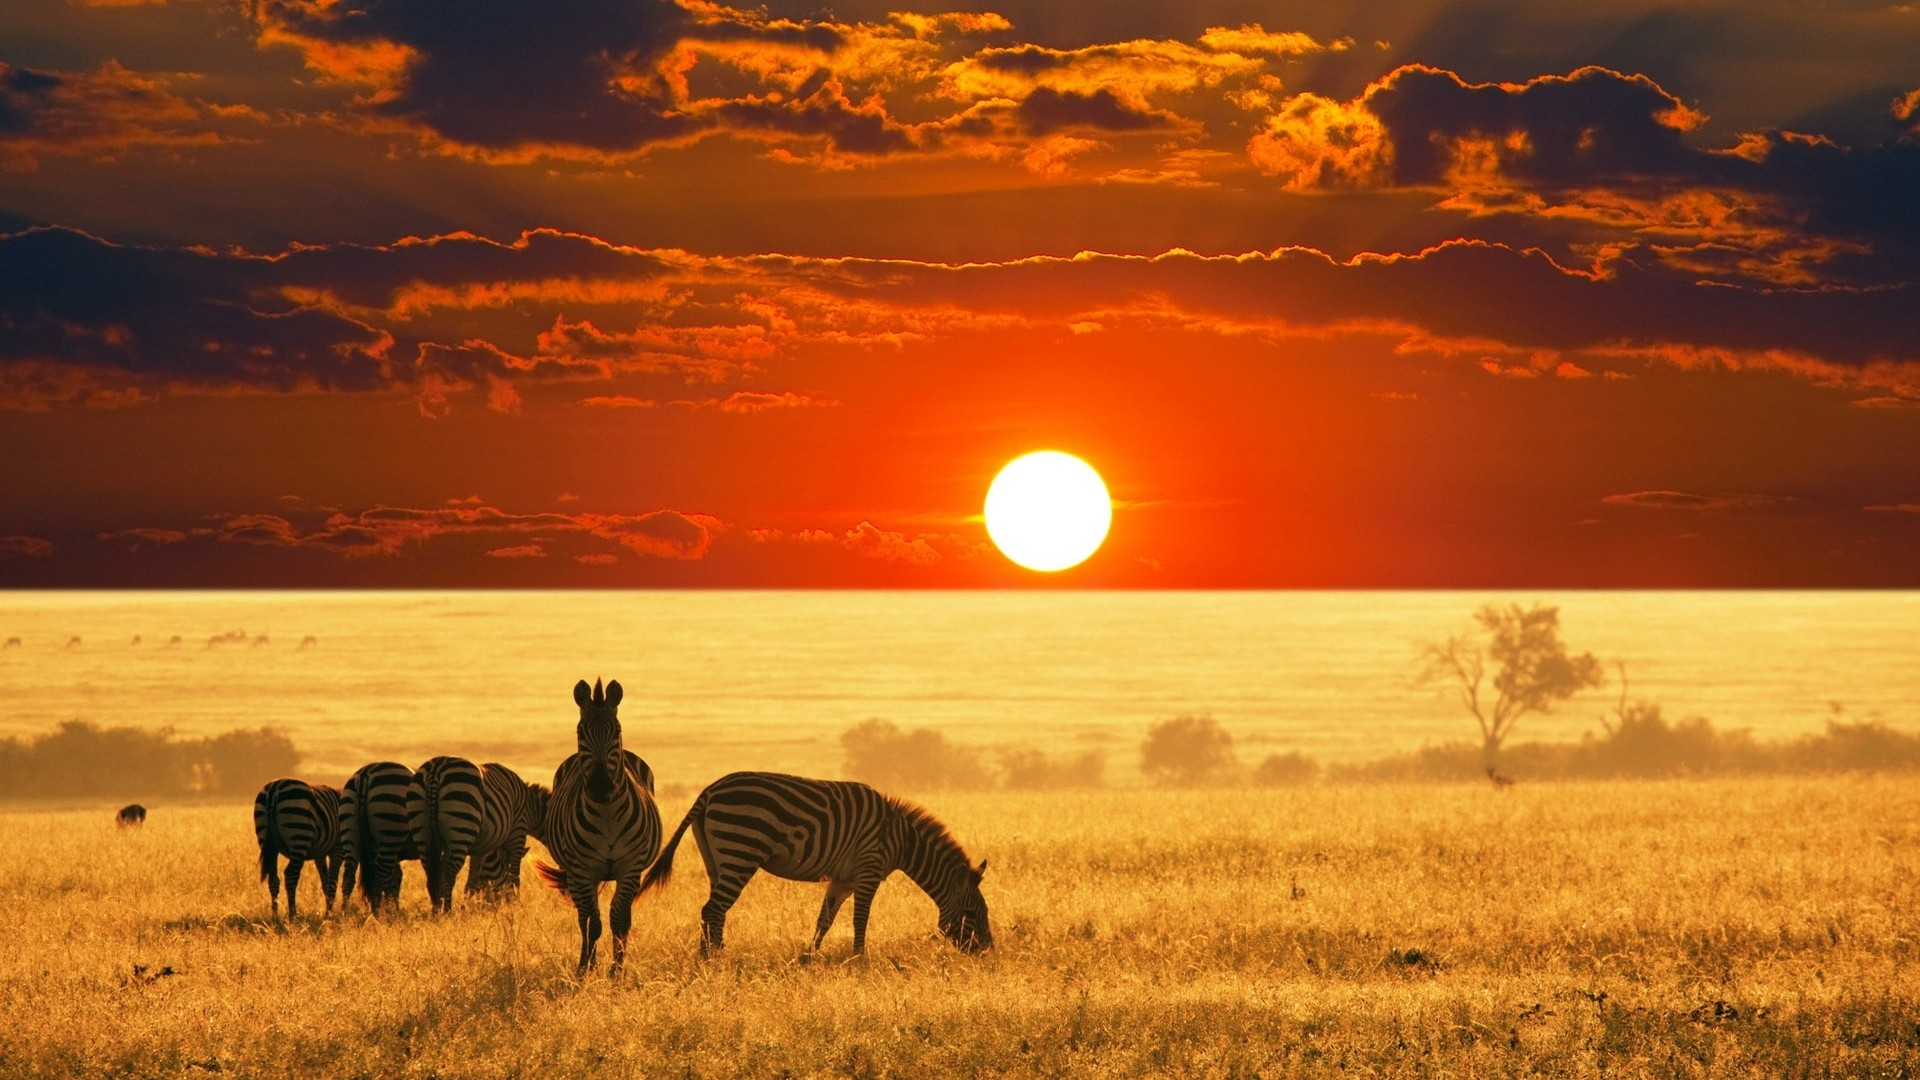 African-safari-animals-wallpaper-HD.jpg